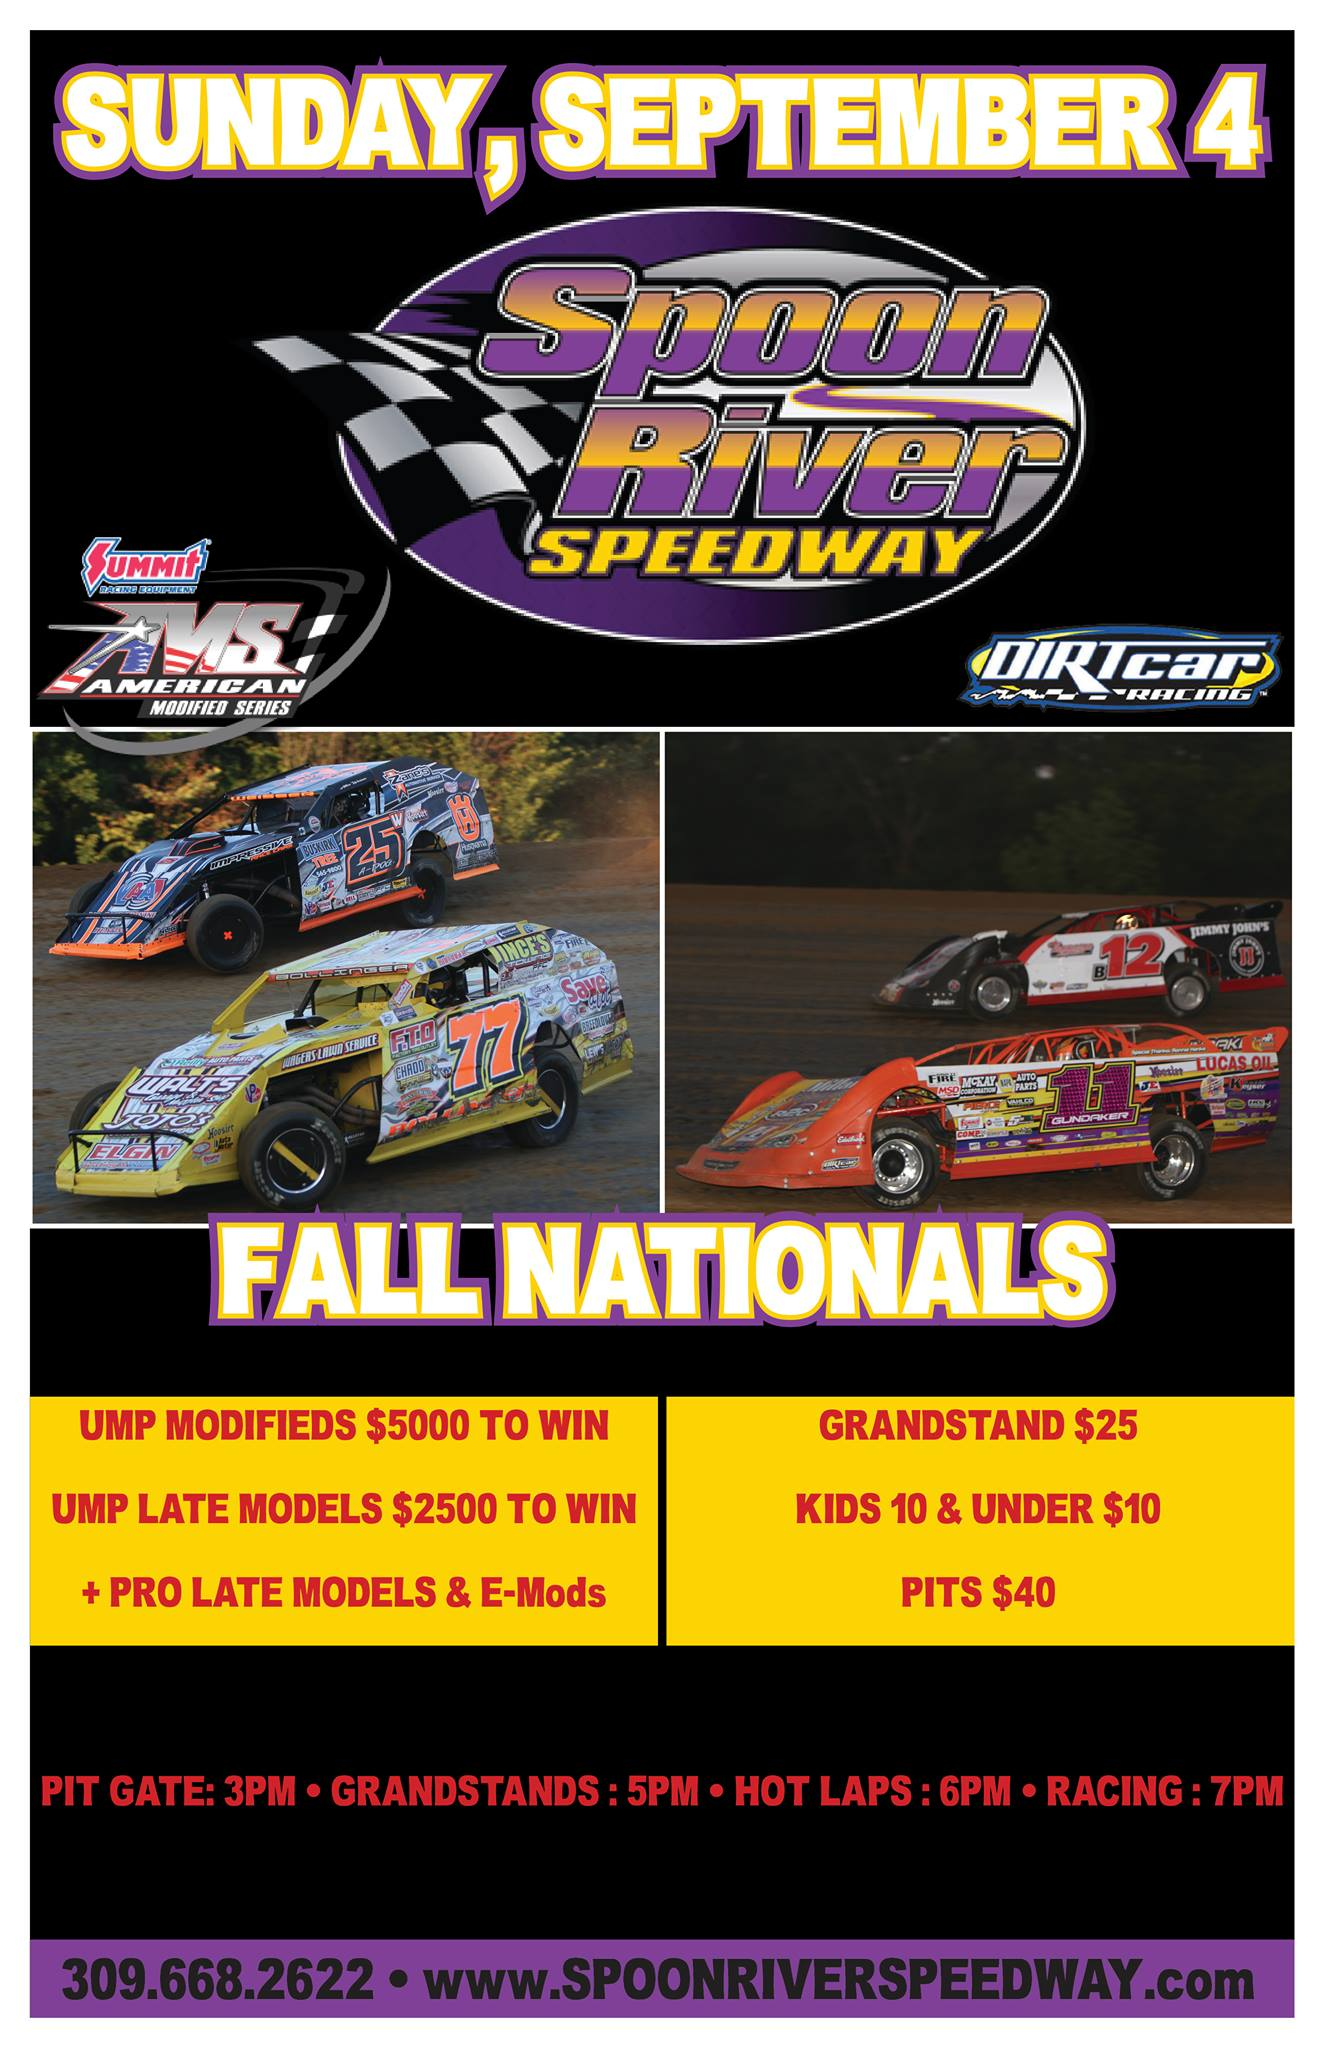 2016 26th Fall Nationals Flyer